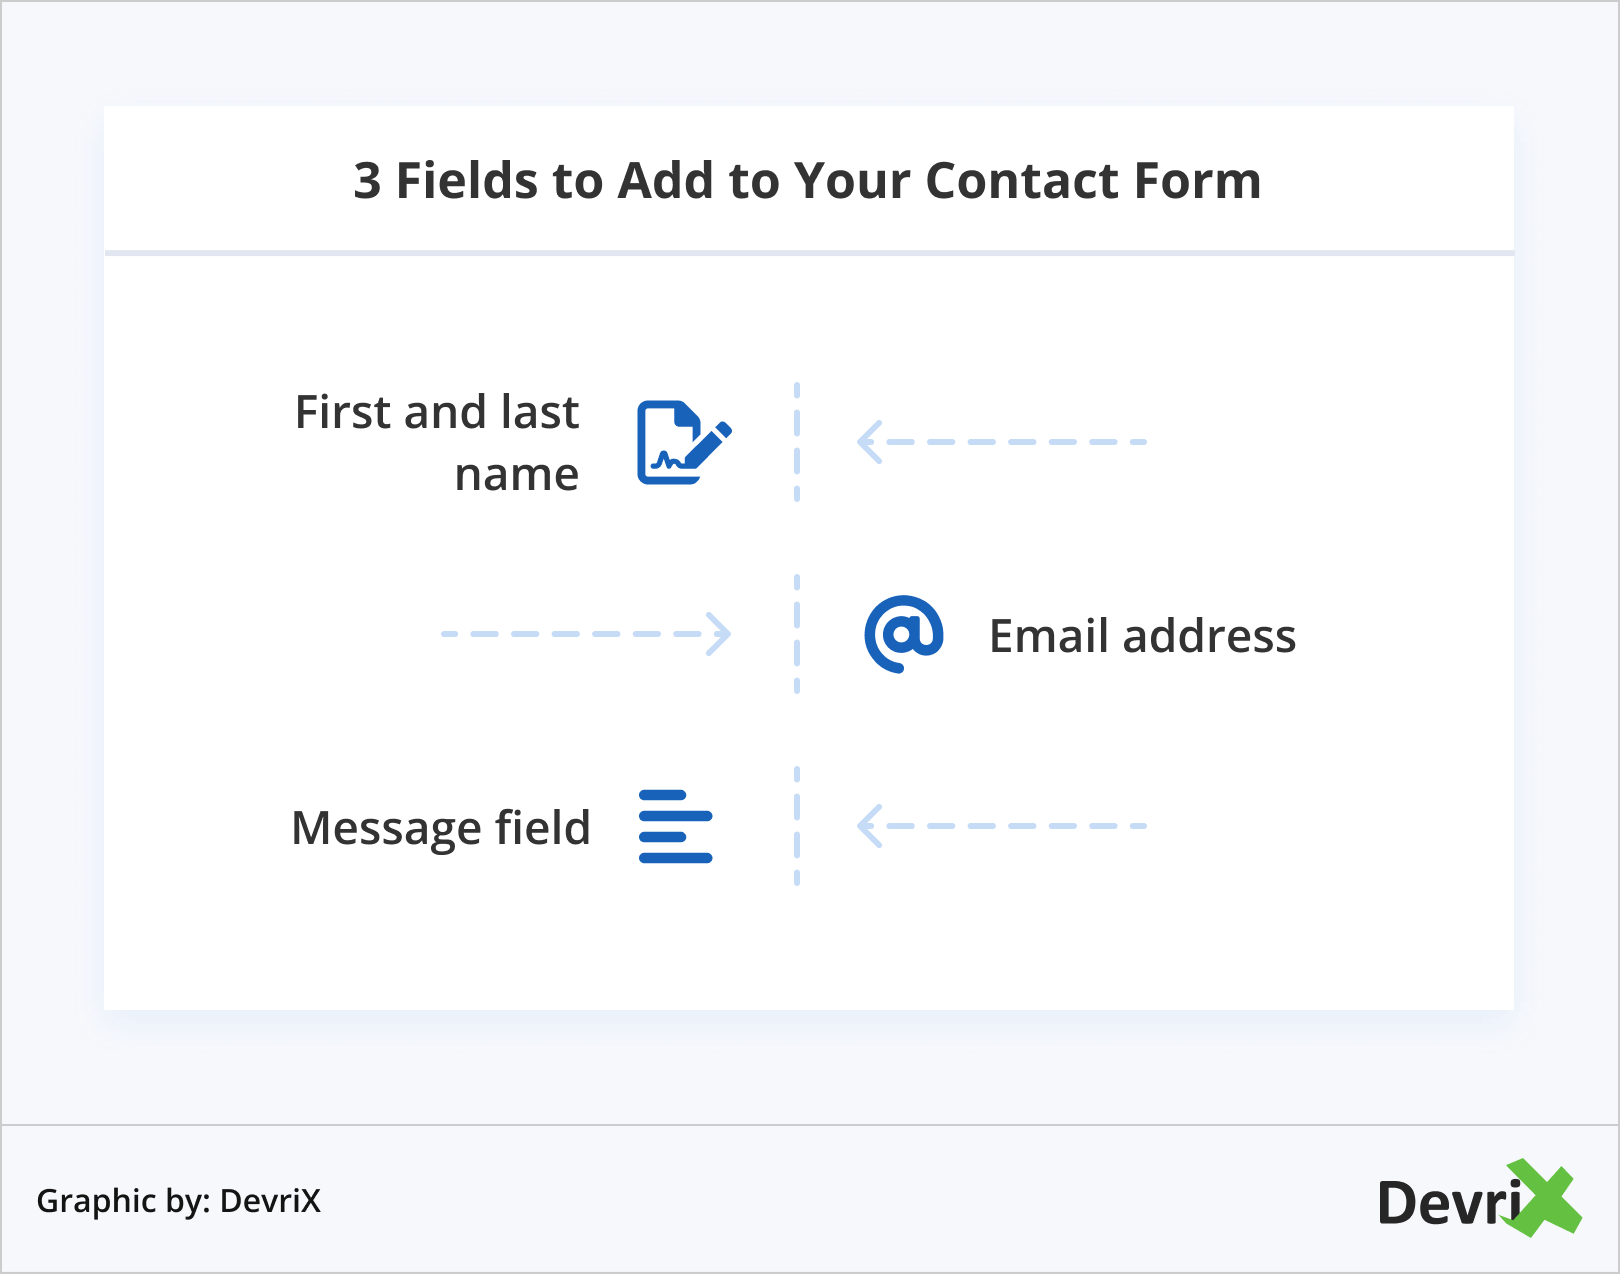 3 Fields to Add to Your Contact Form